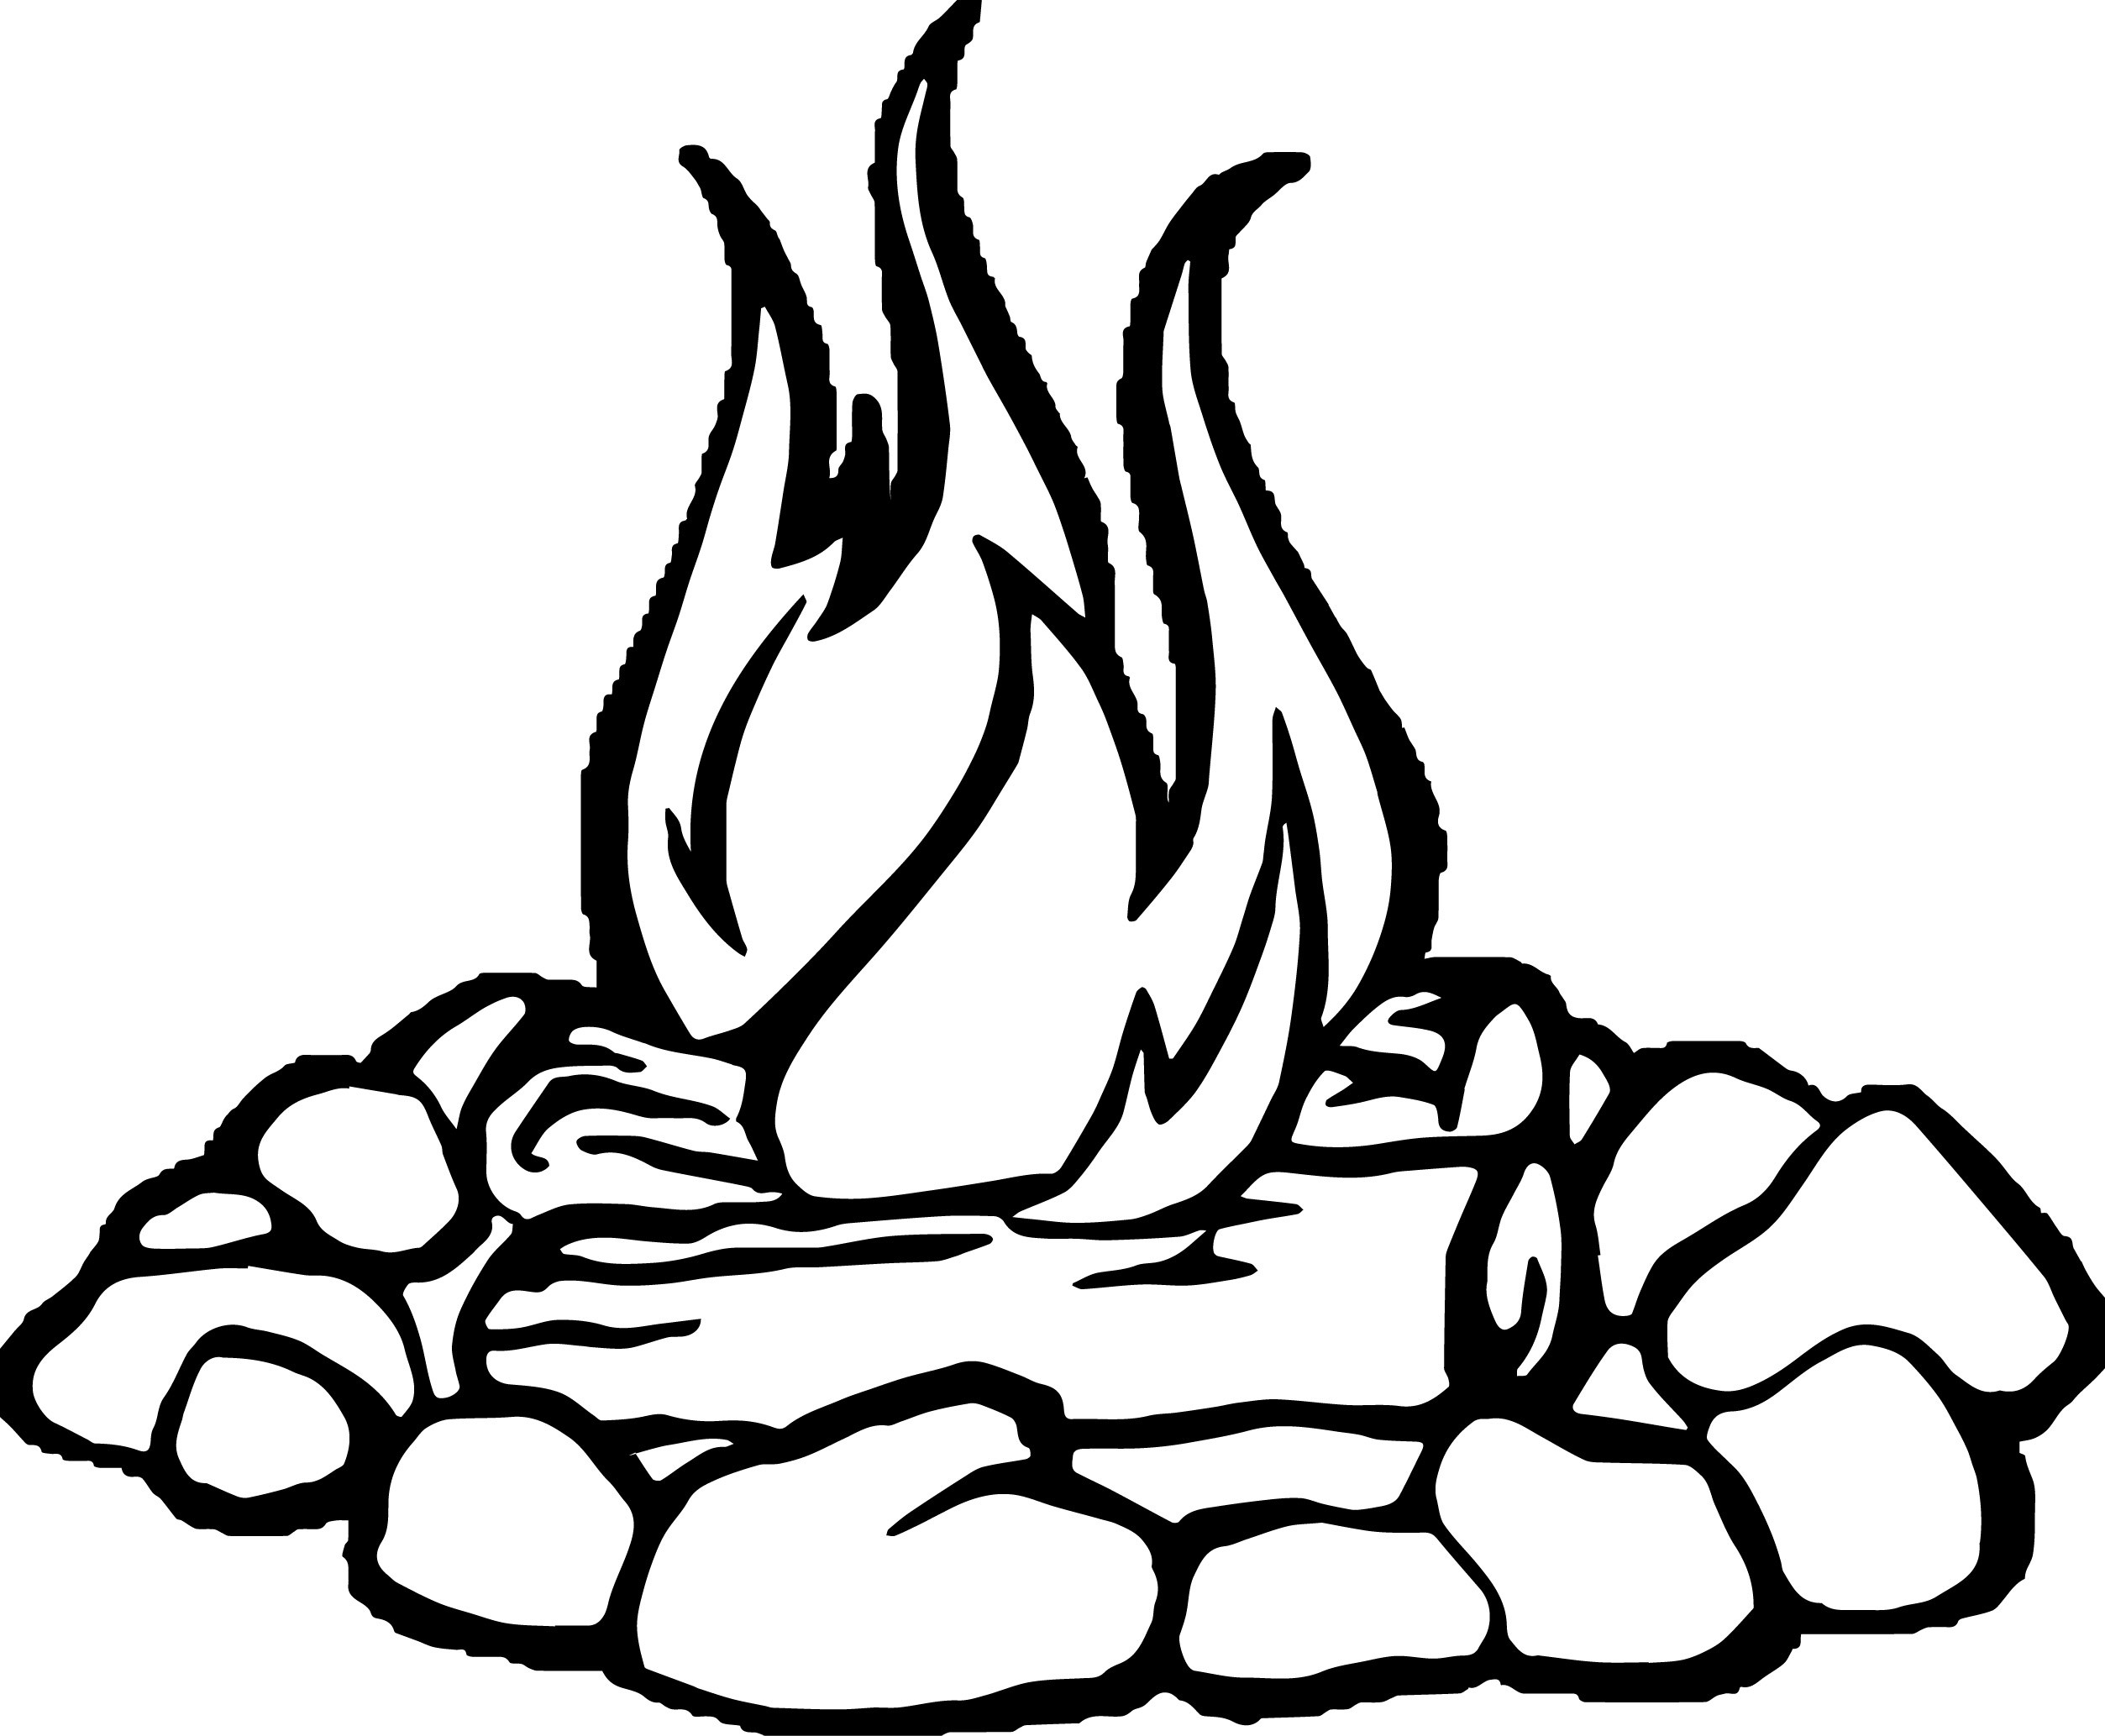 Fire Extinguisher Drawing at GetDrawings.com | Free for personal use ...